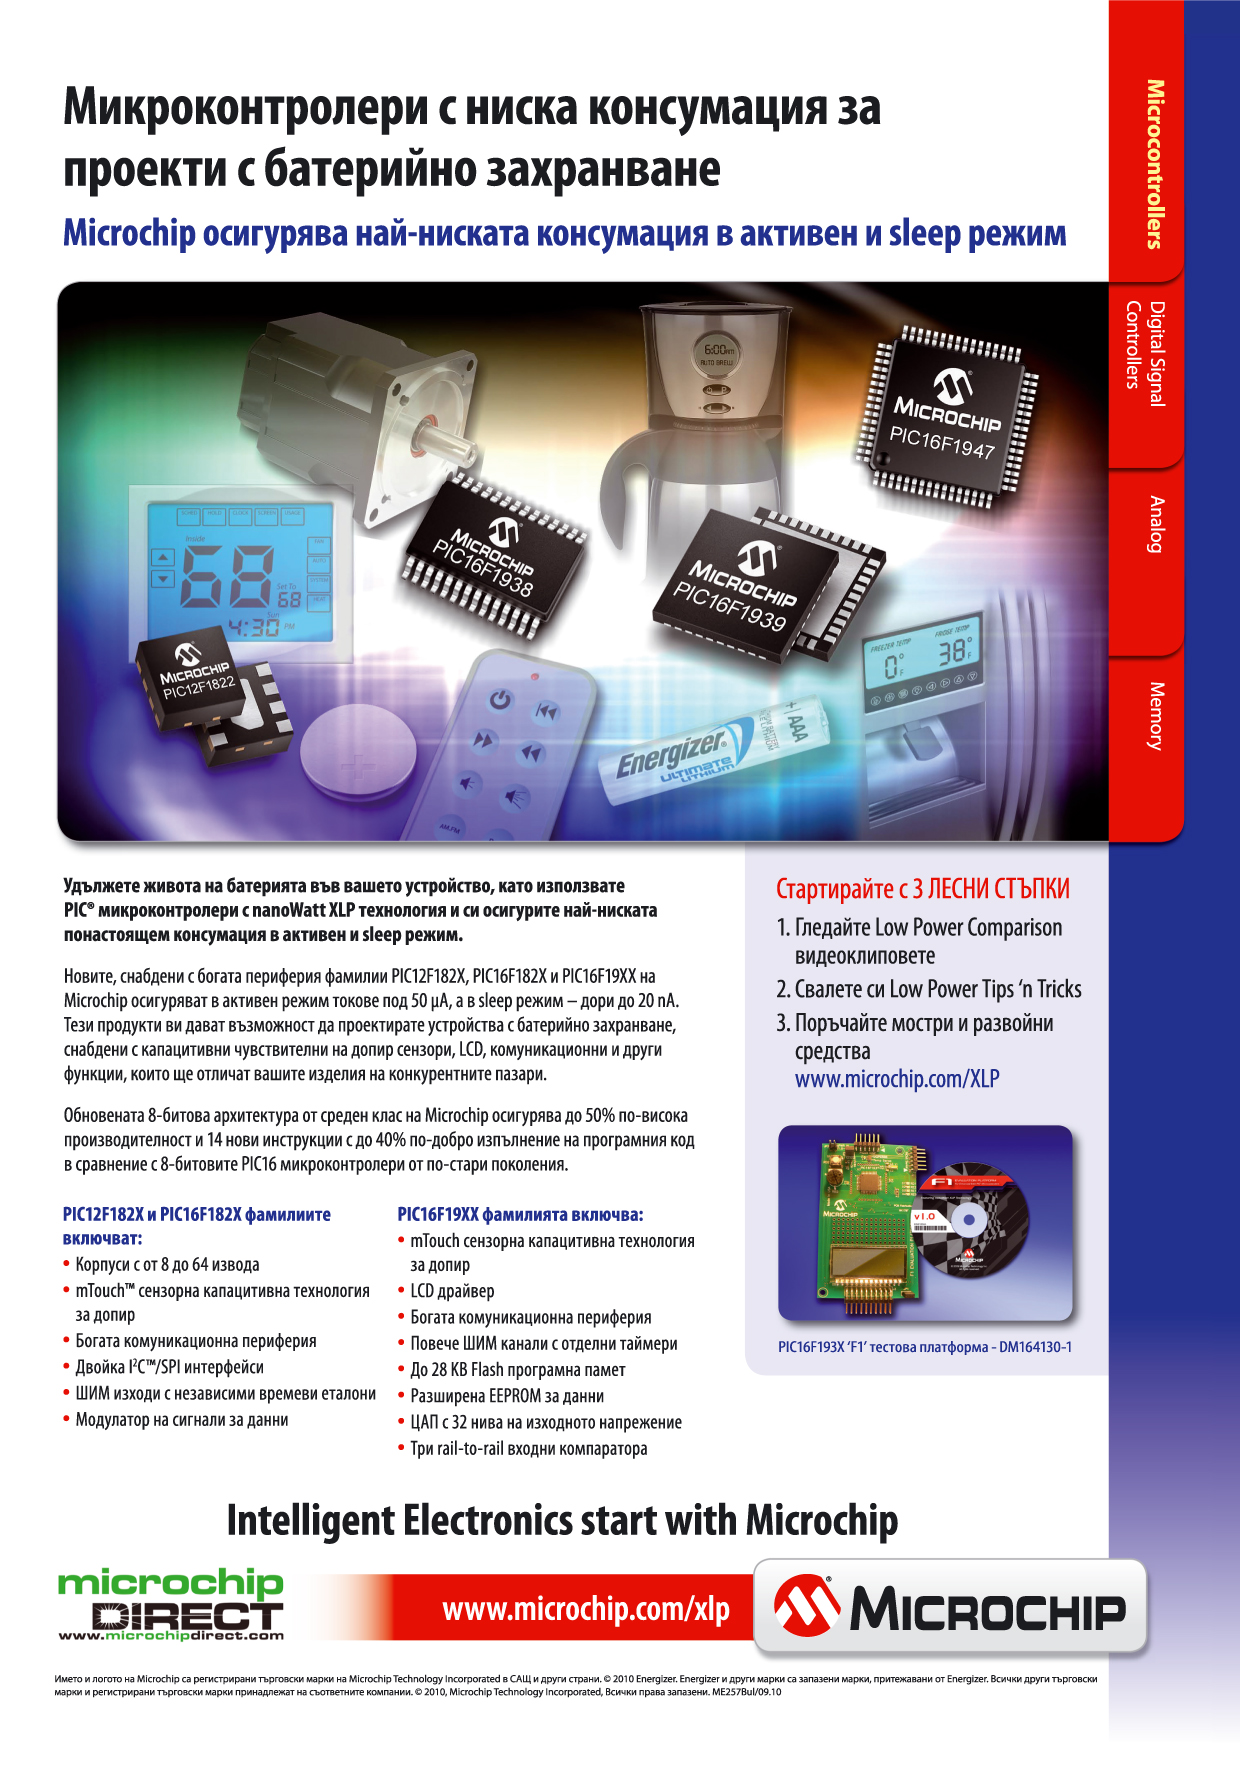 Microchip Technologies